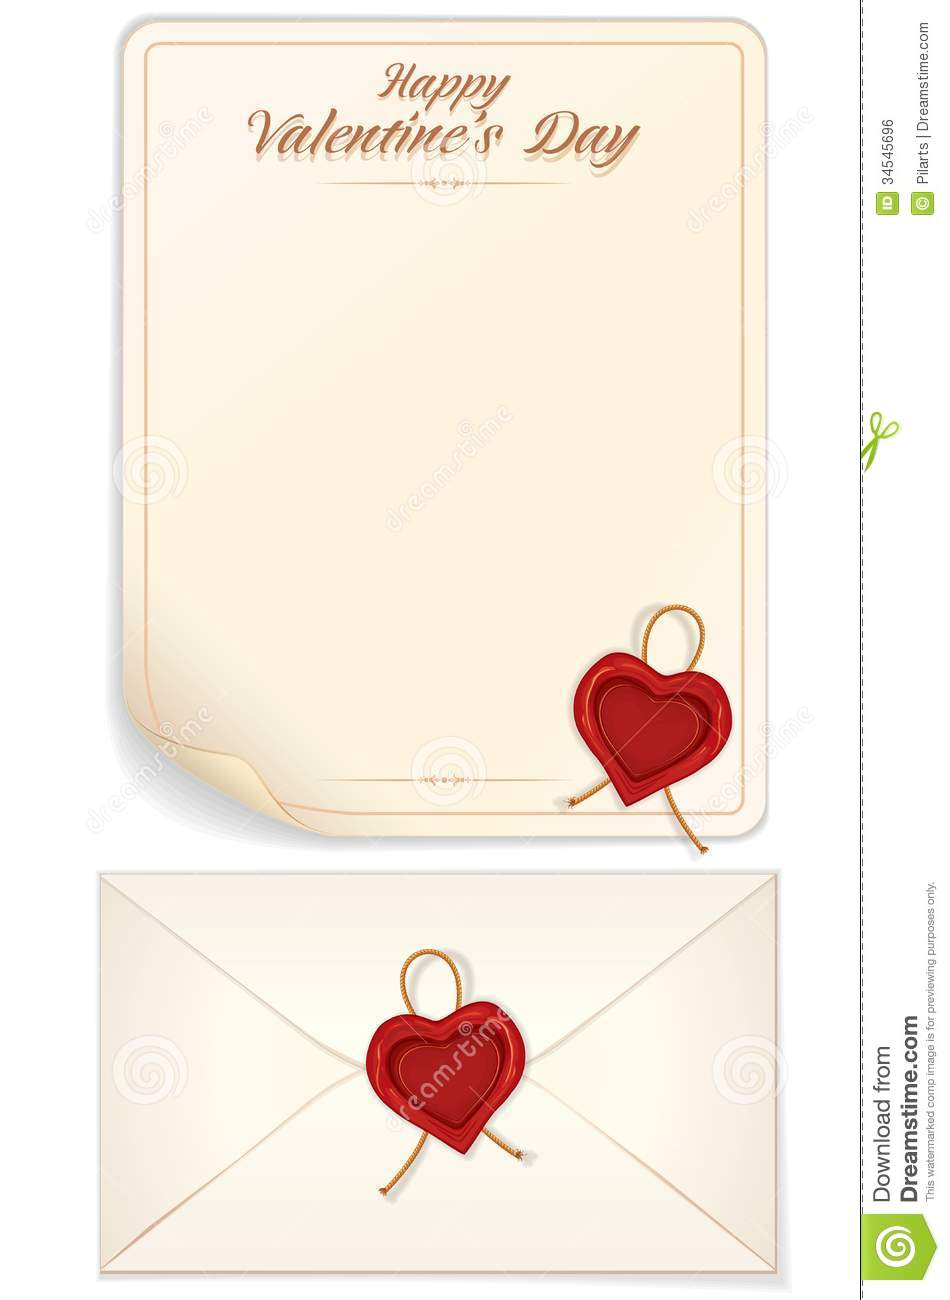 Love Letter Templates Free Hugs and Kisses This Love Themed – Templates for Love Letters